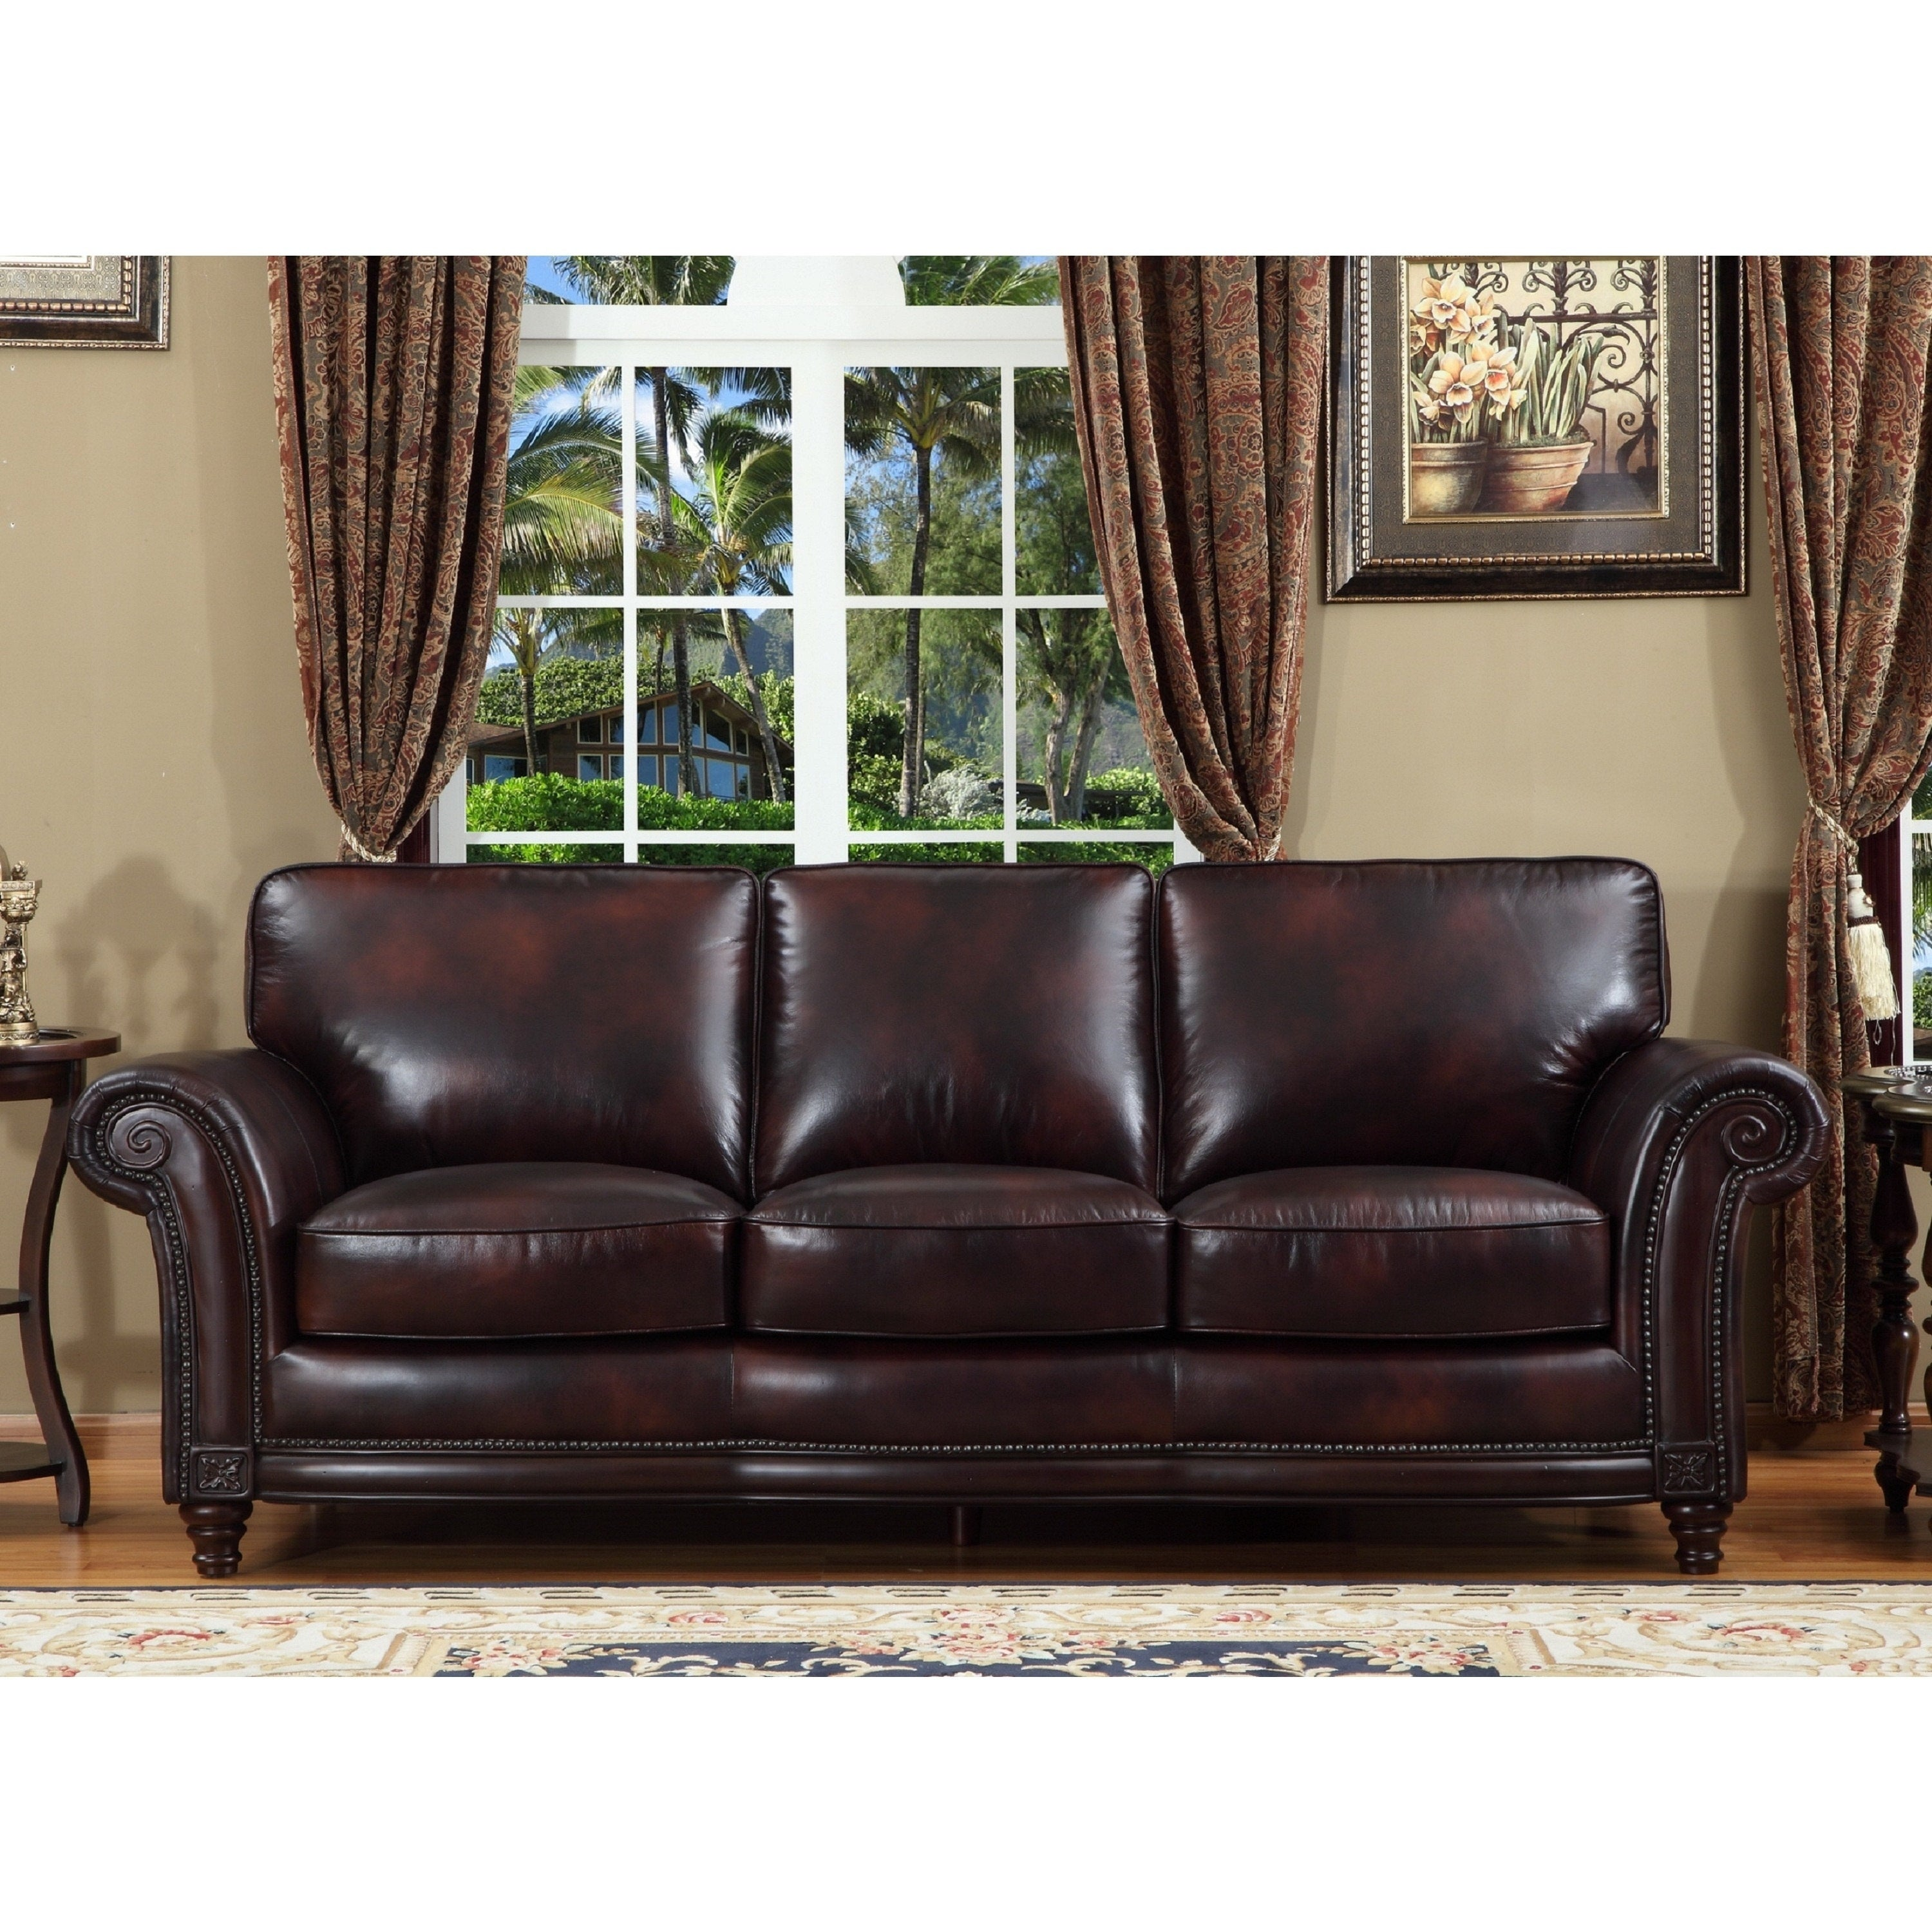 Century Brown Leather Cowhide Sofa Free Shipping Today 9940380